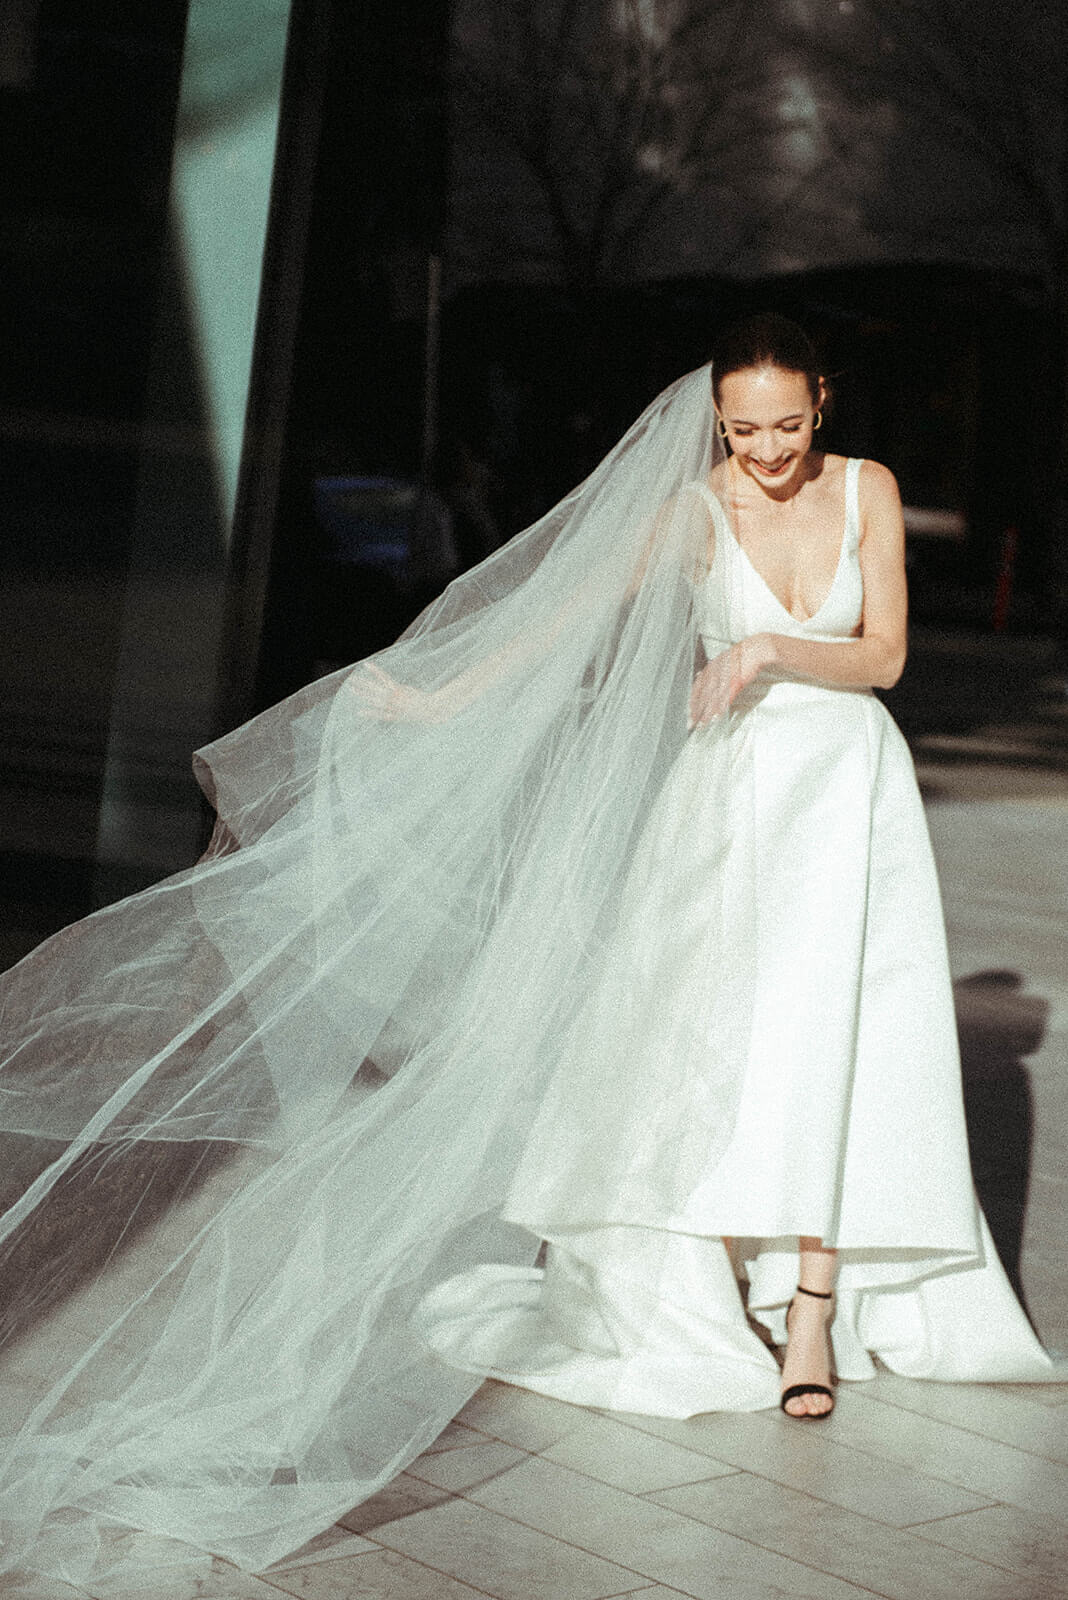 Vogue_inspired_urban_bridal_inspiration_Shoot_Vancouver_Downtown11291324218035